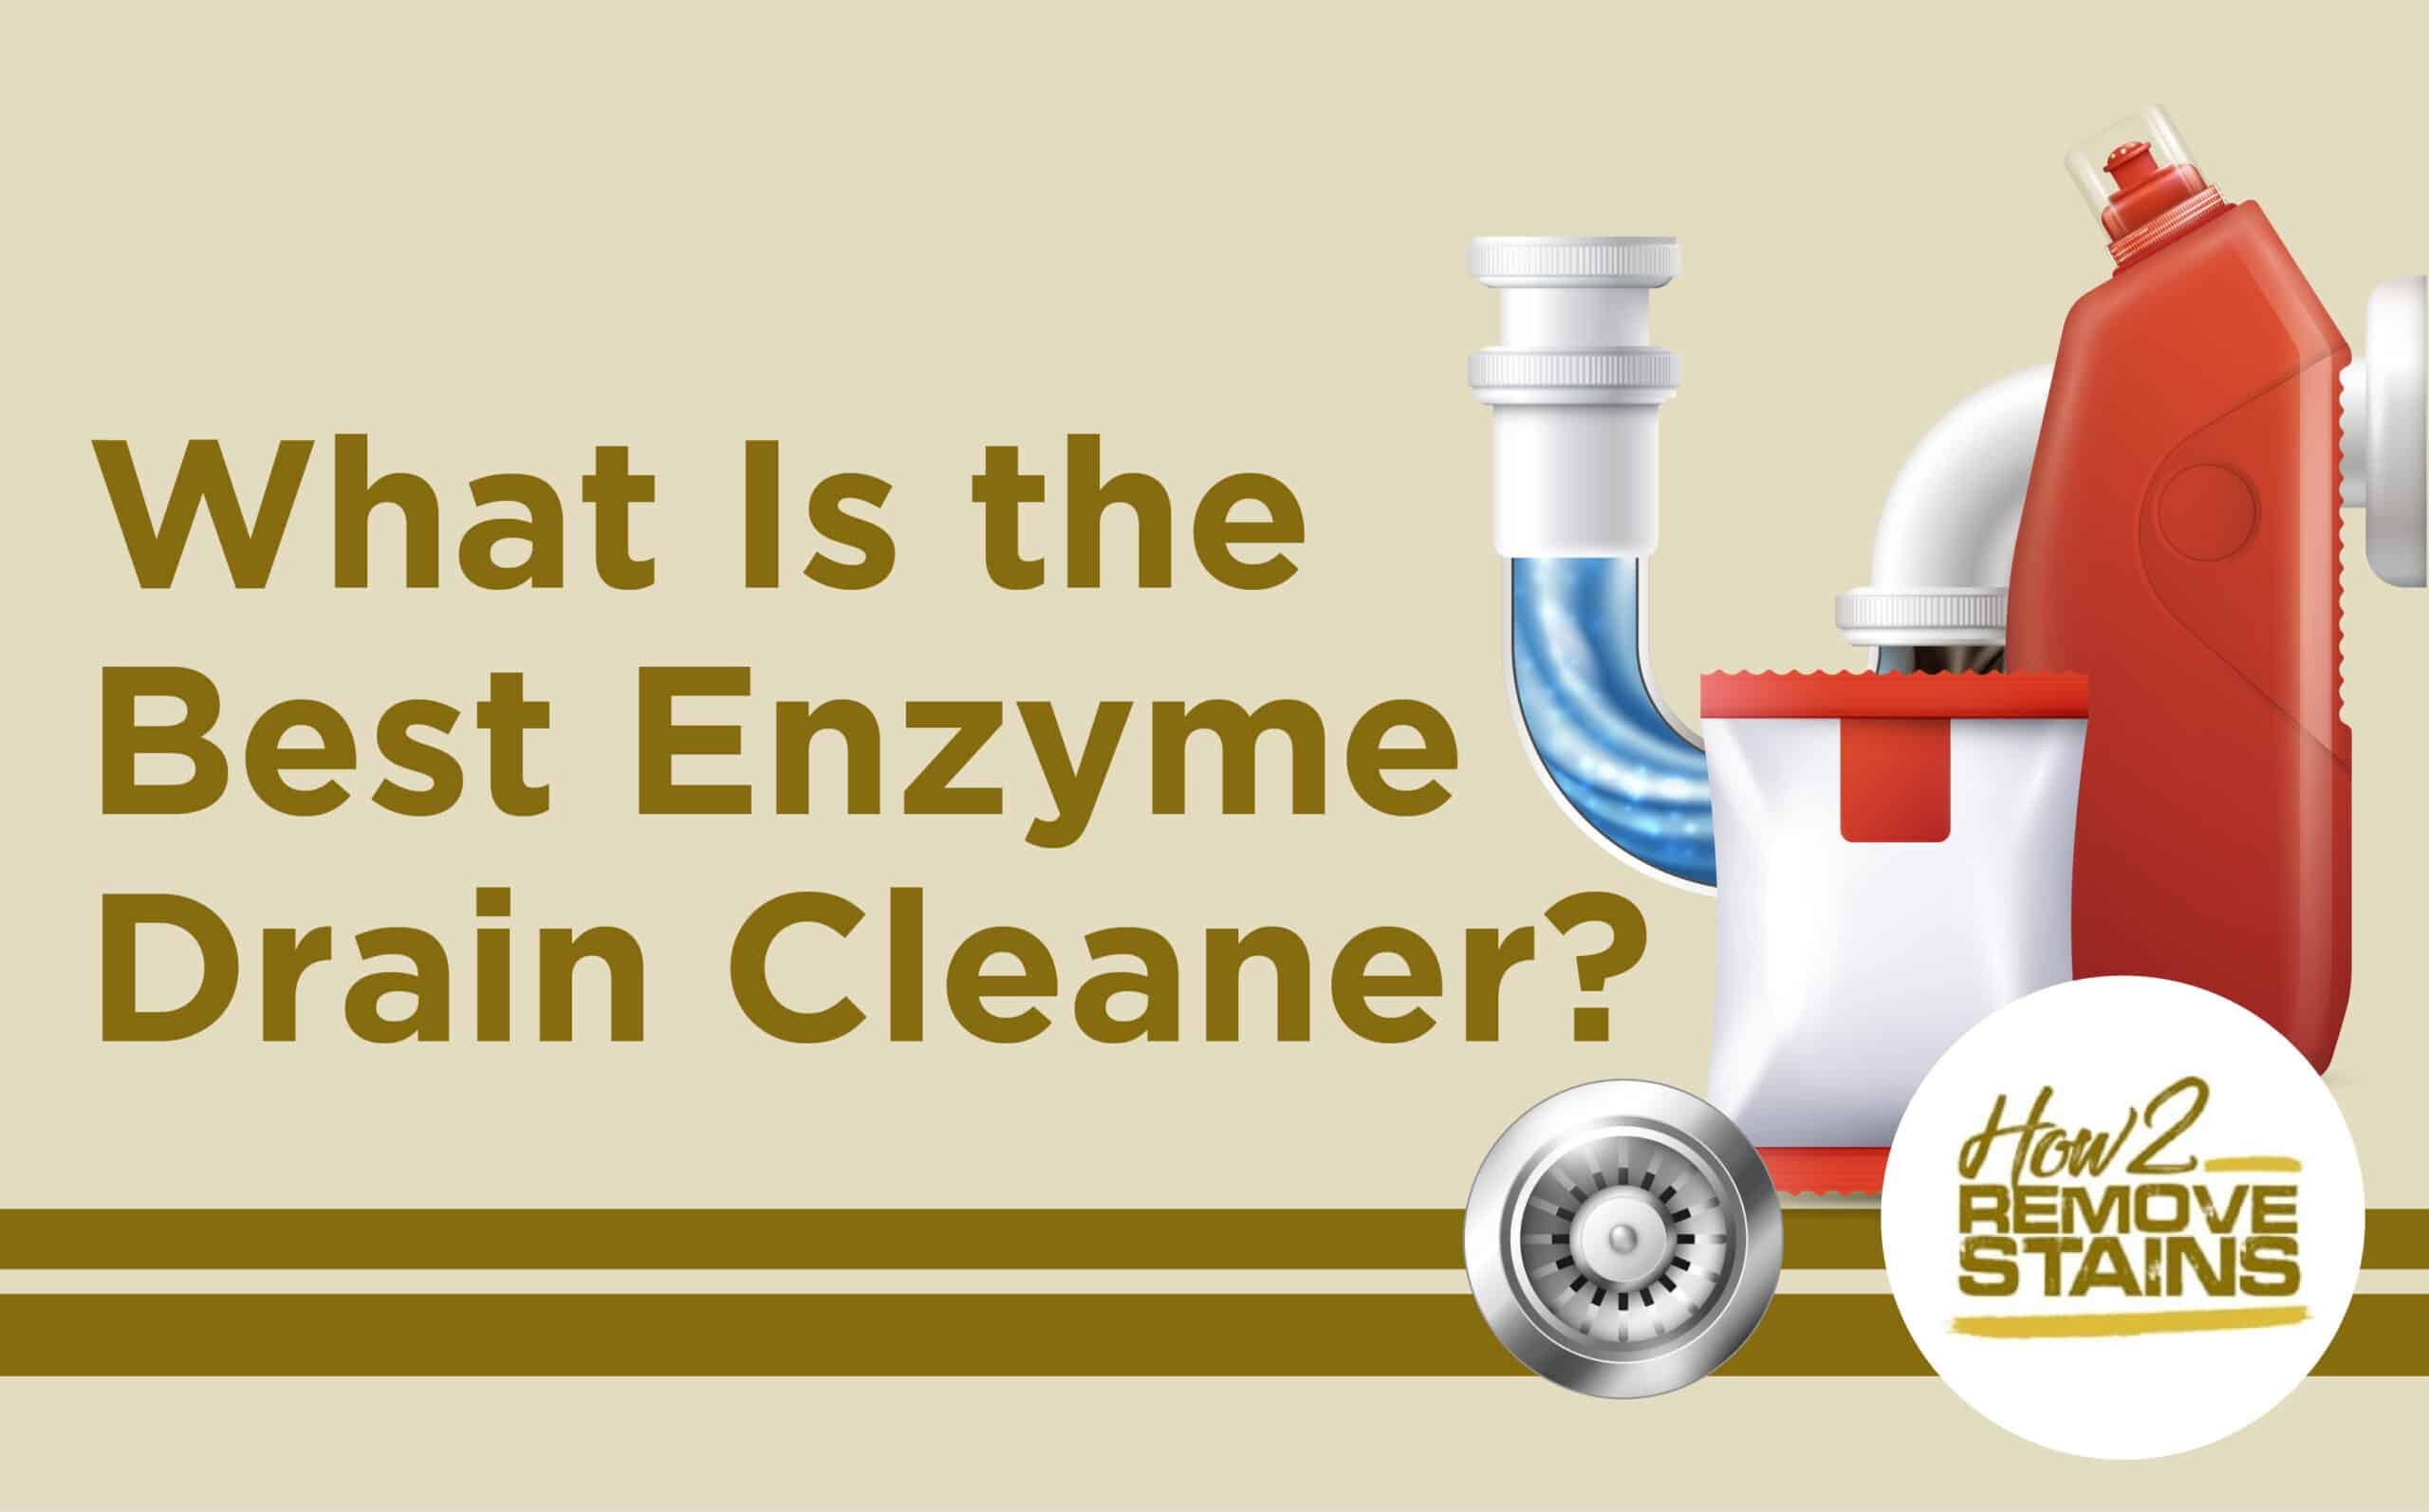 What Is the Best Enzyme Drain Cleaner